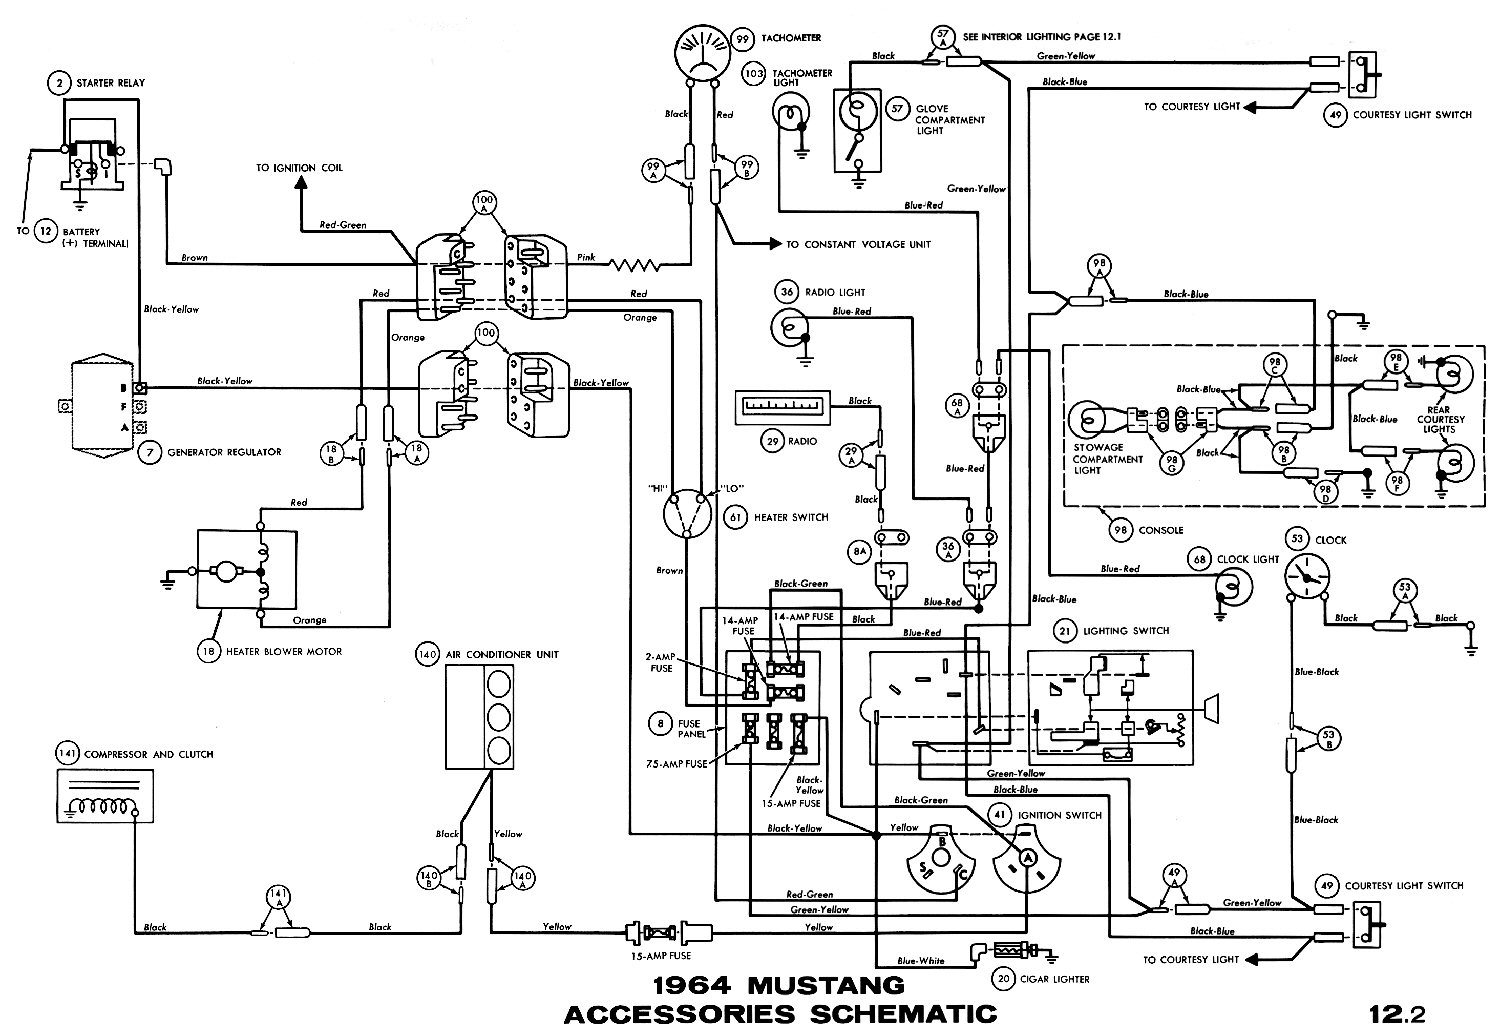 Ford Mustang Vacuum Line Diagram On 95 Ford Mustang Gt Fuse Box